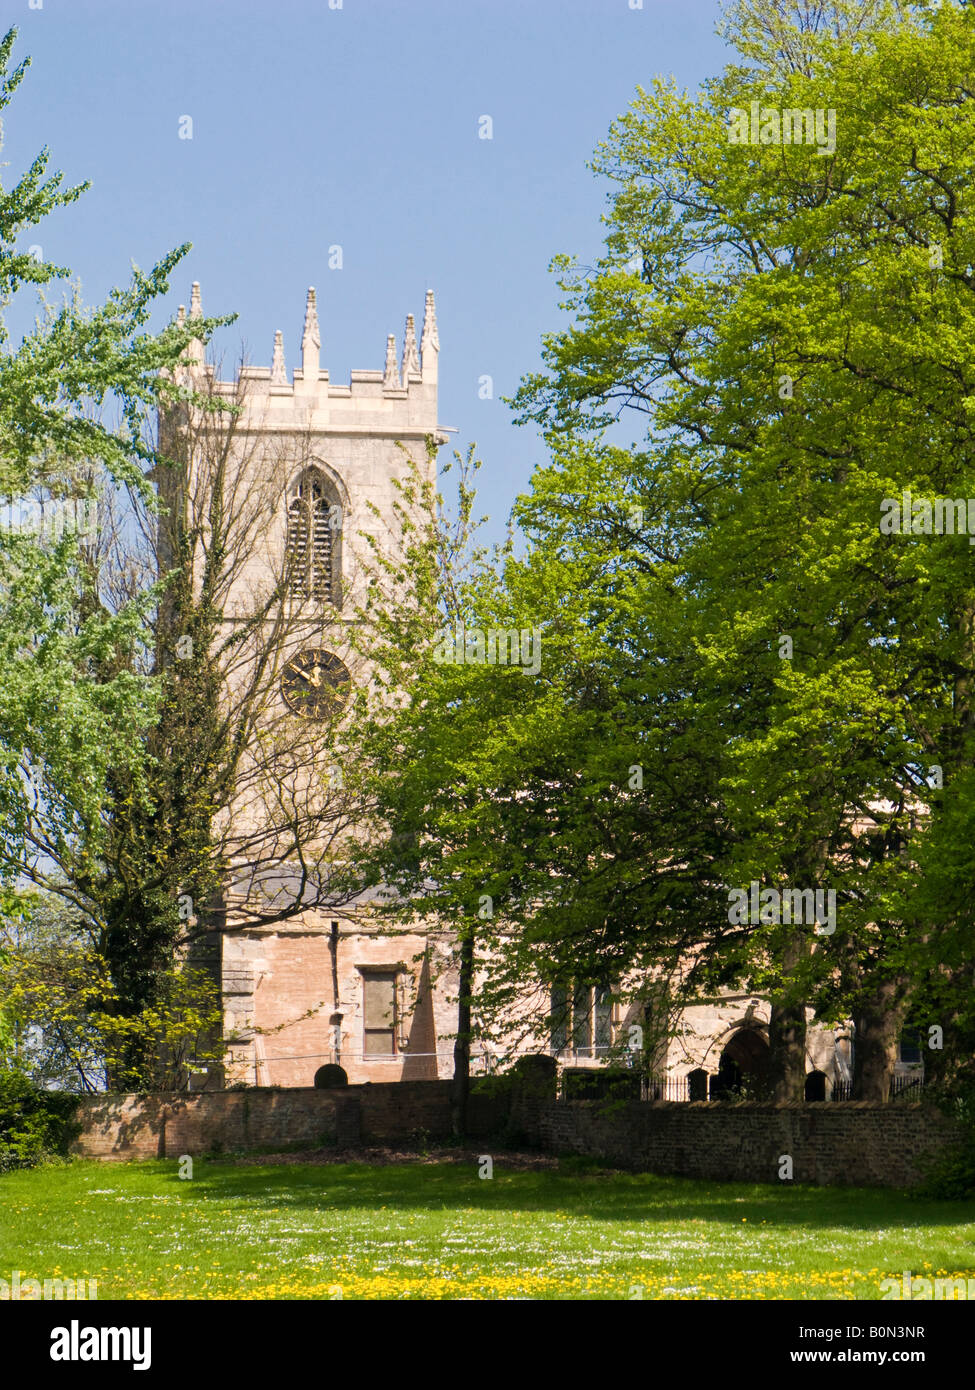 St Andrews the Parish Church at Epworth North Lincolnshire UK where 'Samuel Wesley' was rector - Stock Image